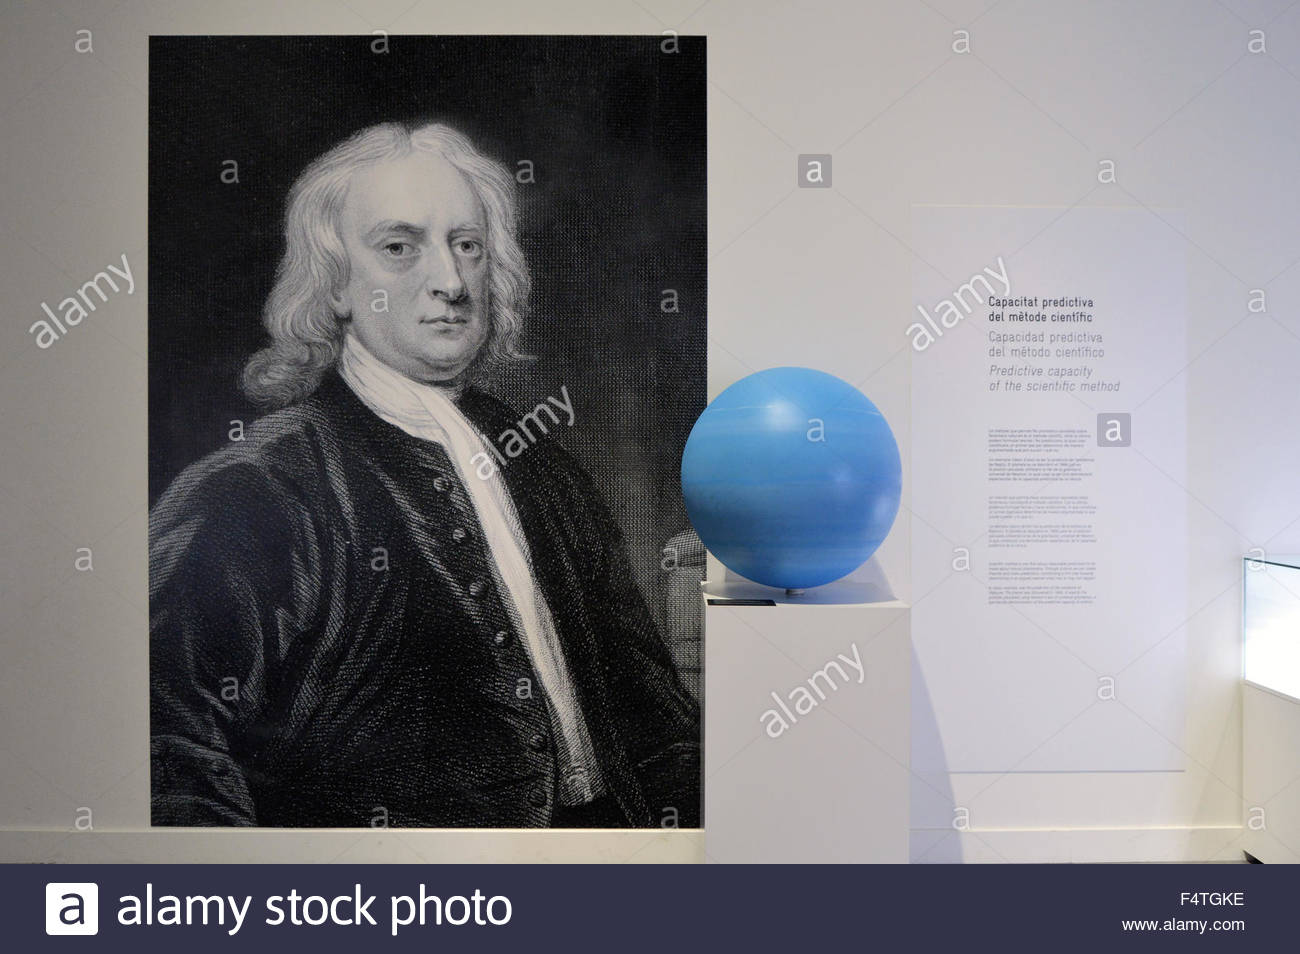 Portrait of Sir Isaac Newton displayed at CosmoCaixa (science) museum in Barcelona Spain Europe - Stock Image